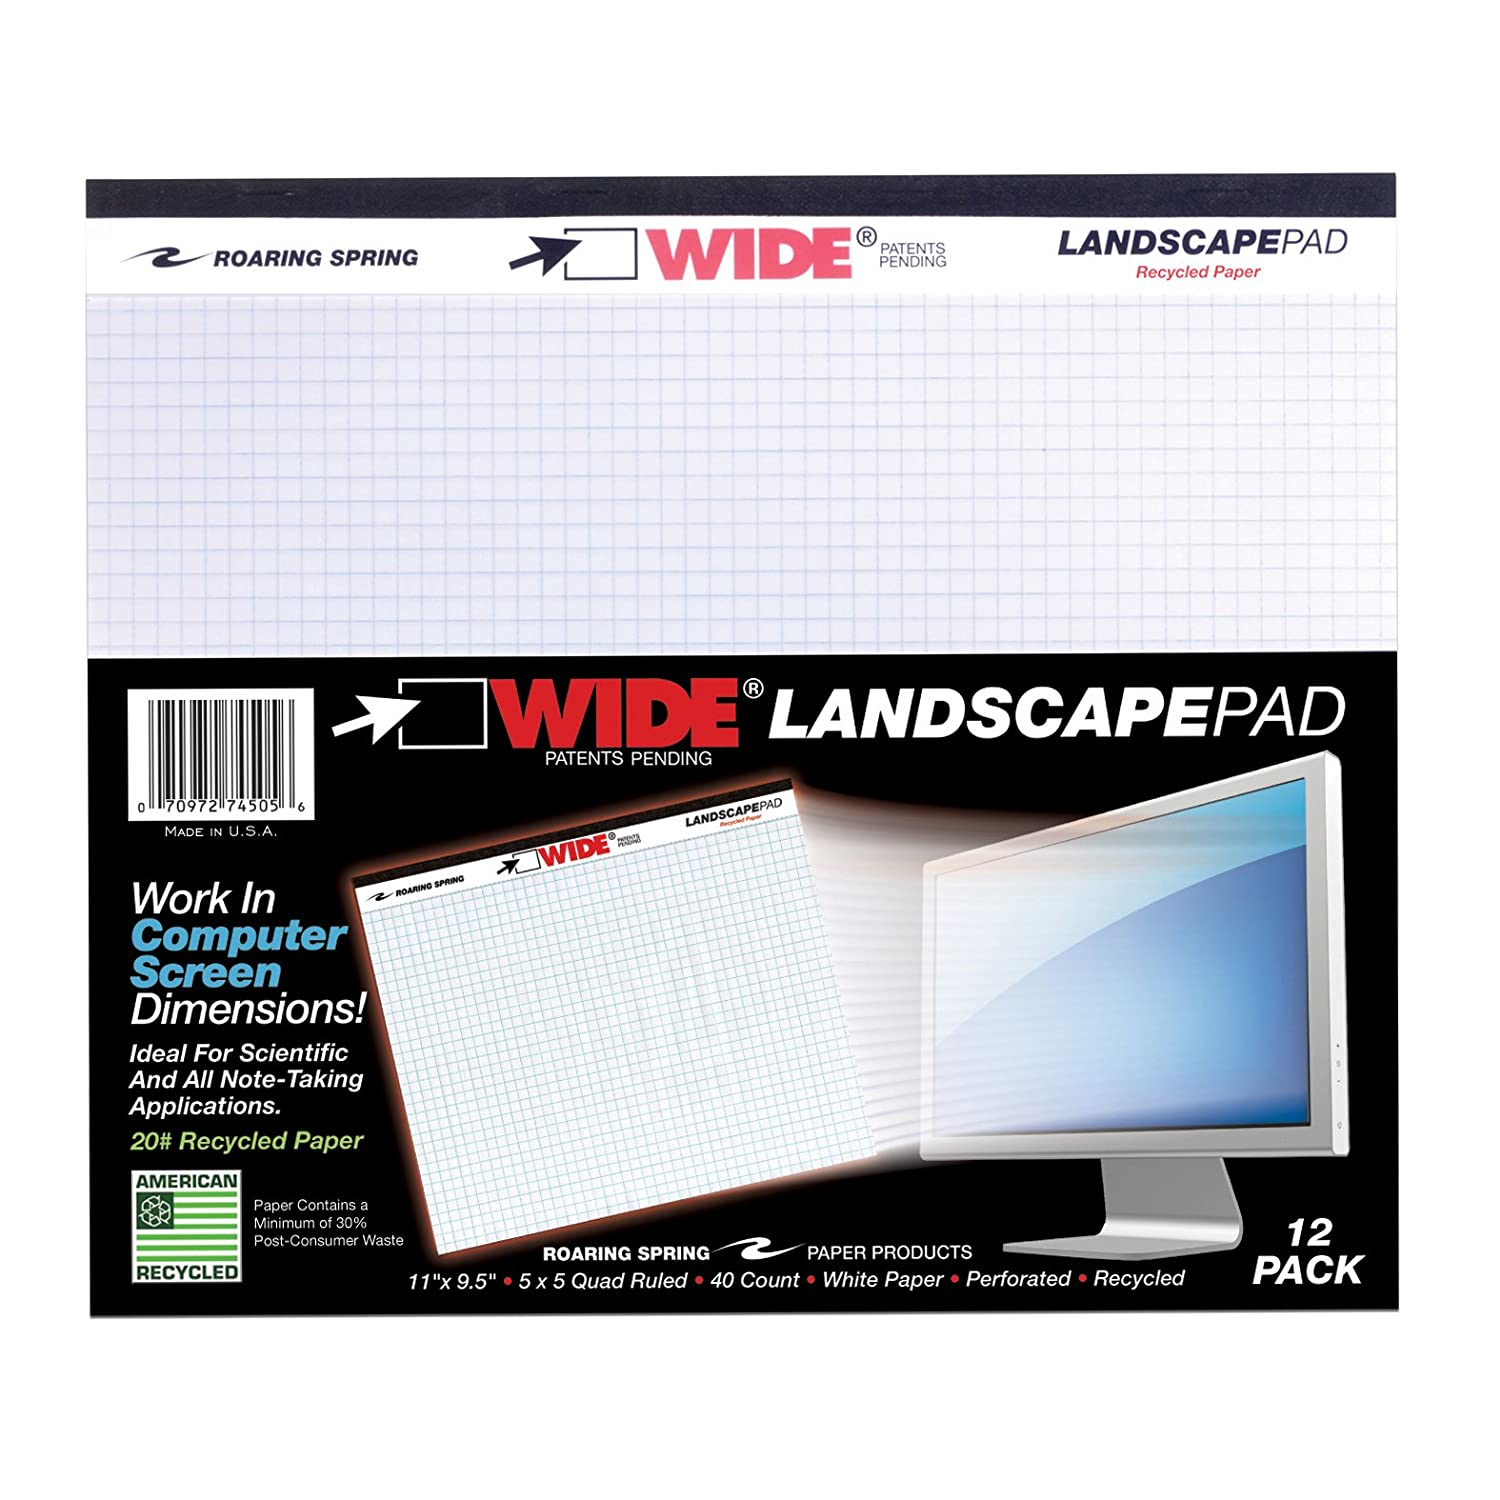 40 sheets Heavyweight 20# Recycled White Paper College Ruled W//Margin 11x9.5 Case of 18 Packs of Landscape Note Pads 2 Pads//pack Micro-Perforated